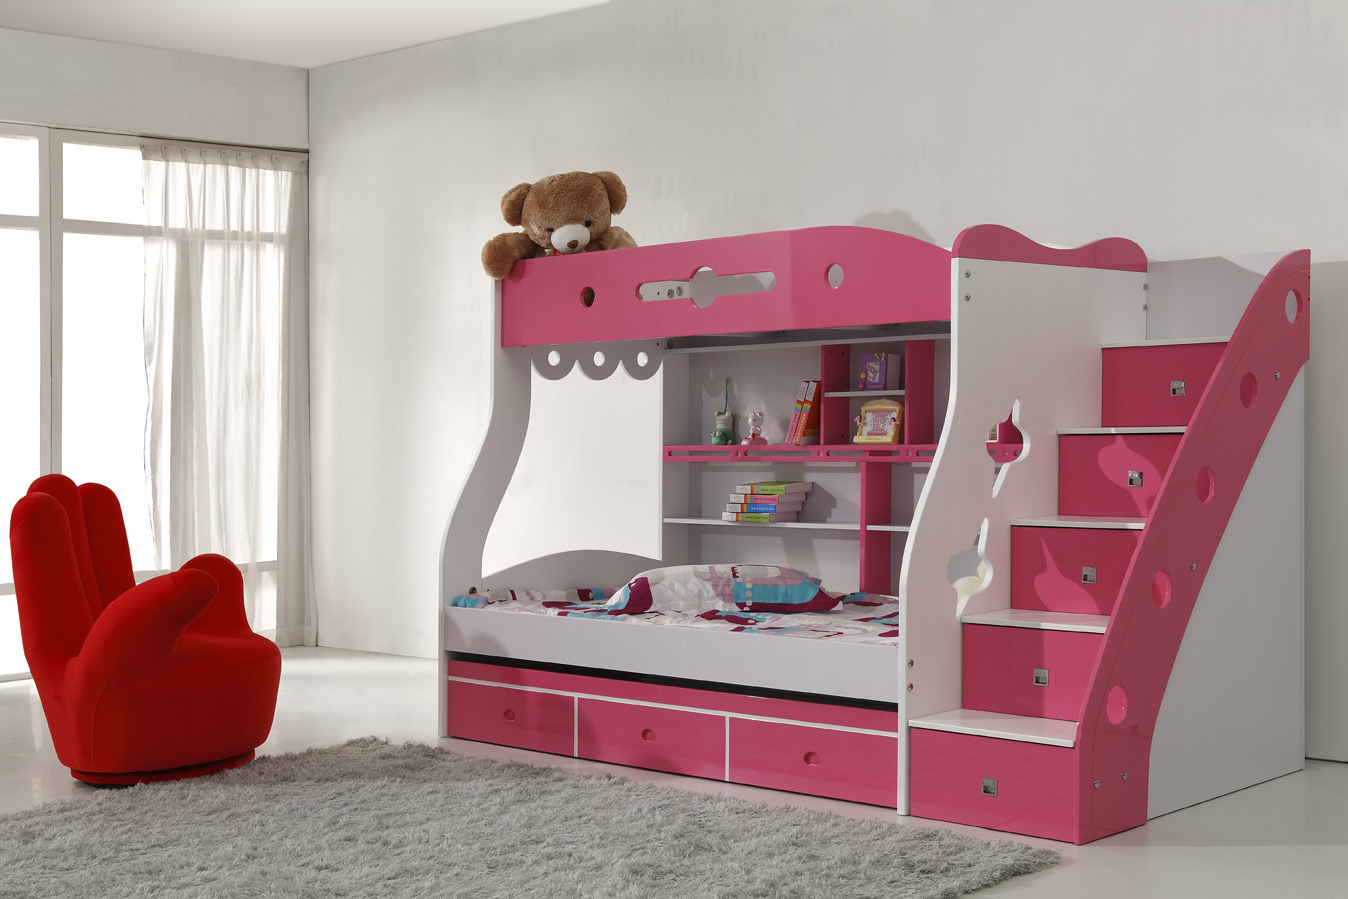 Cool Kids Bunk Beds China 857 Bunk Beds China Children Furniture Kid Furniture